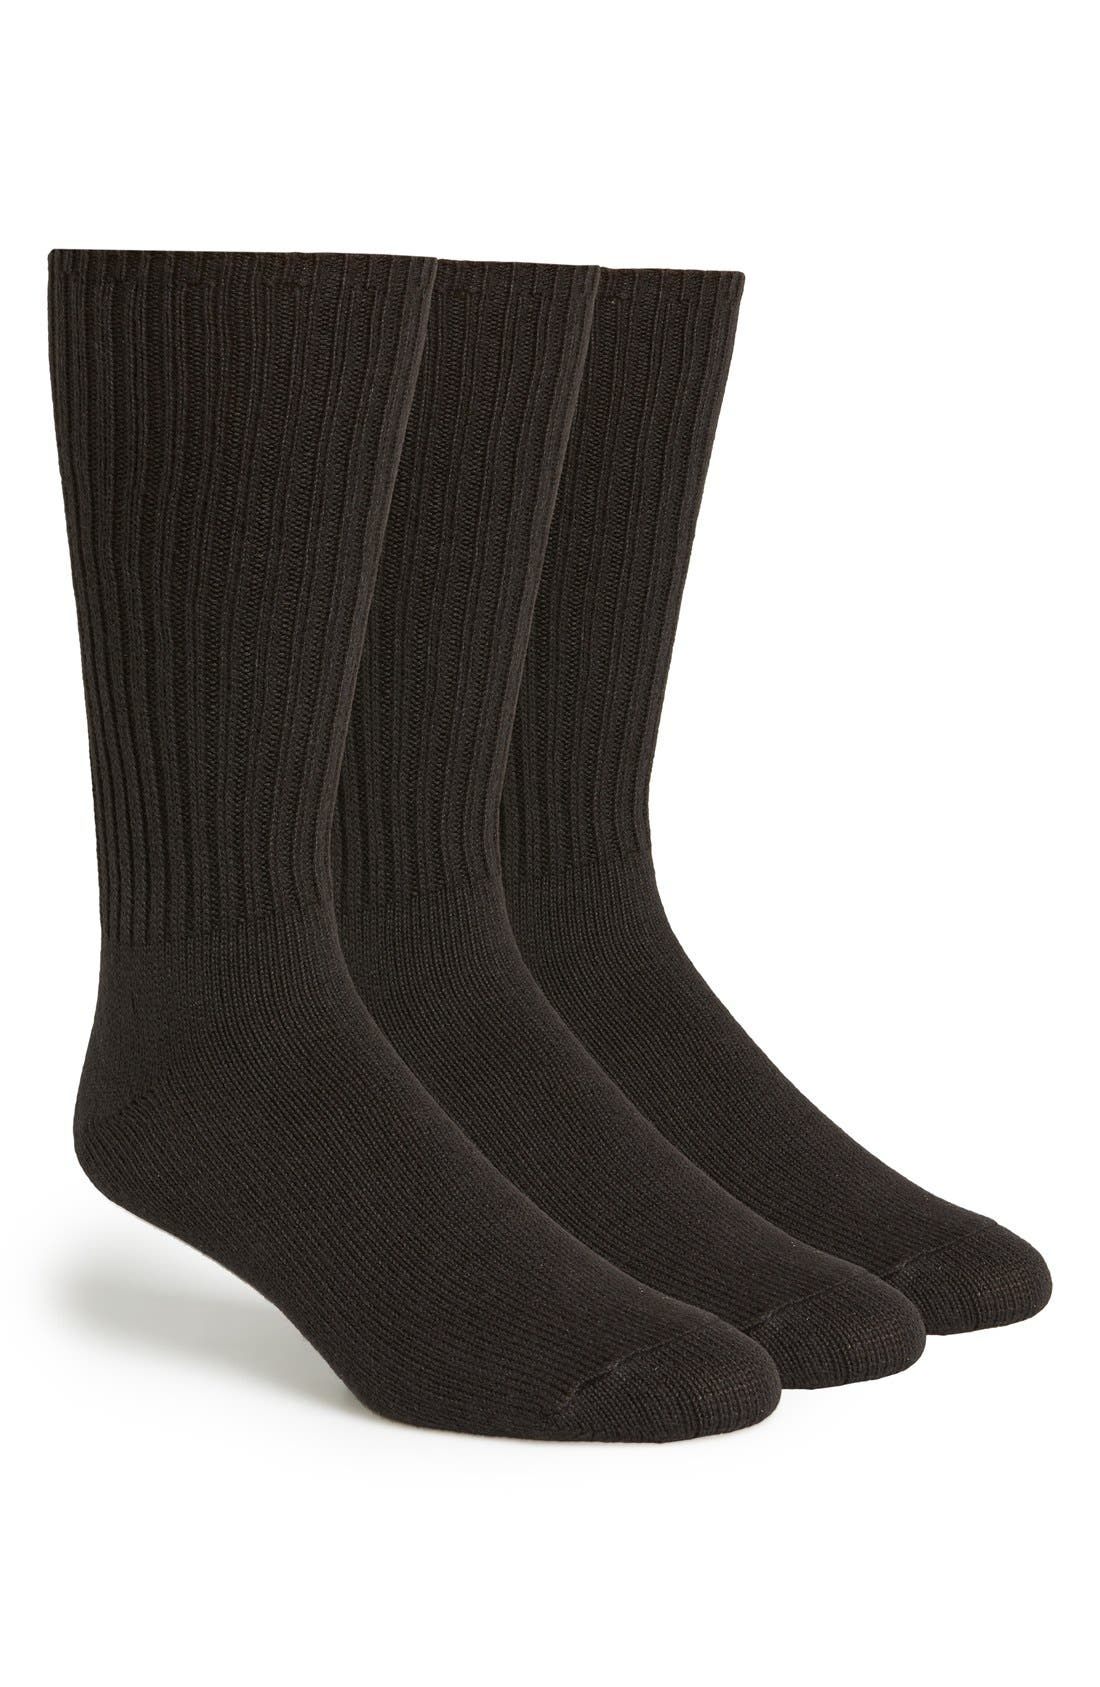 Alternate Image 1 Selected - Calvin Klein 3-Pack Casual Socks